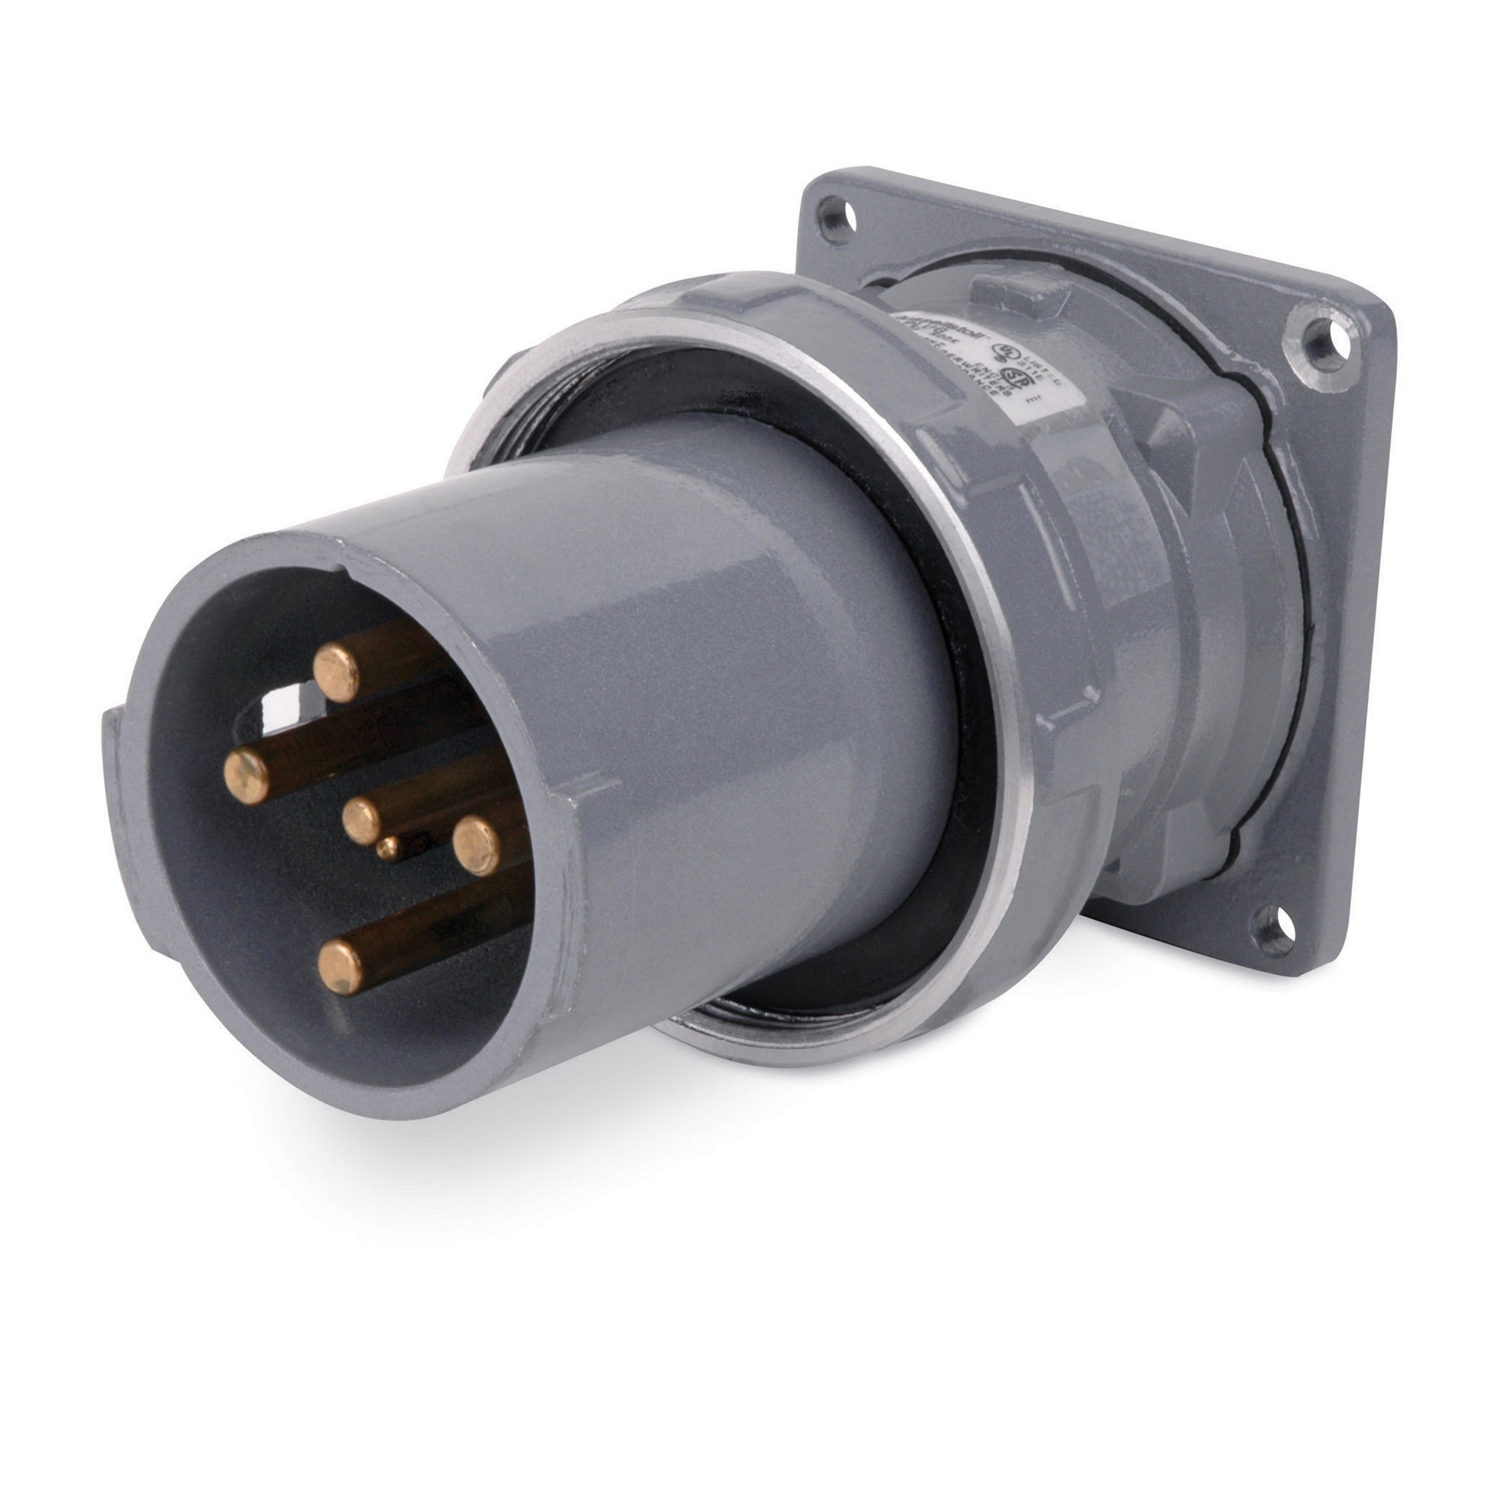 R&S DS6504MR000 4P5W 60A CB INLET